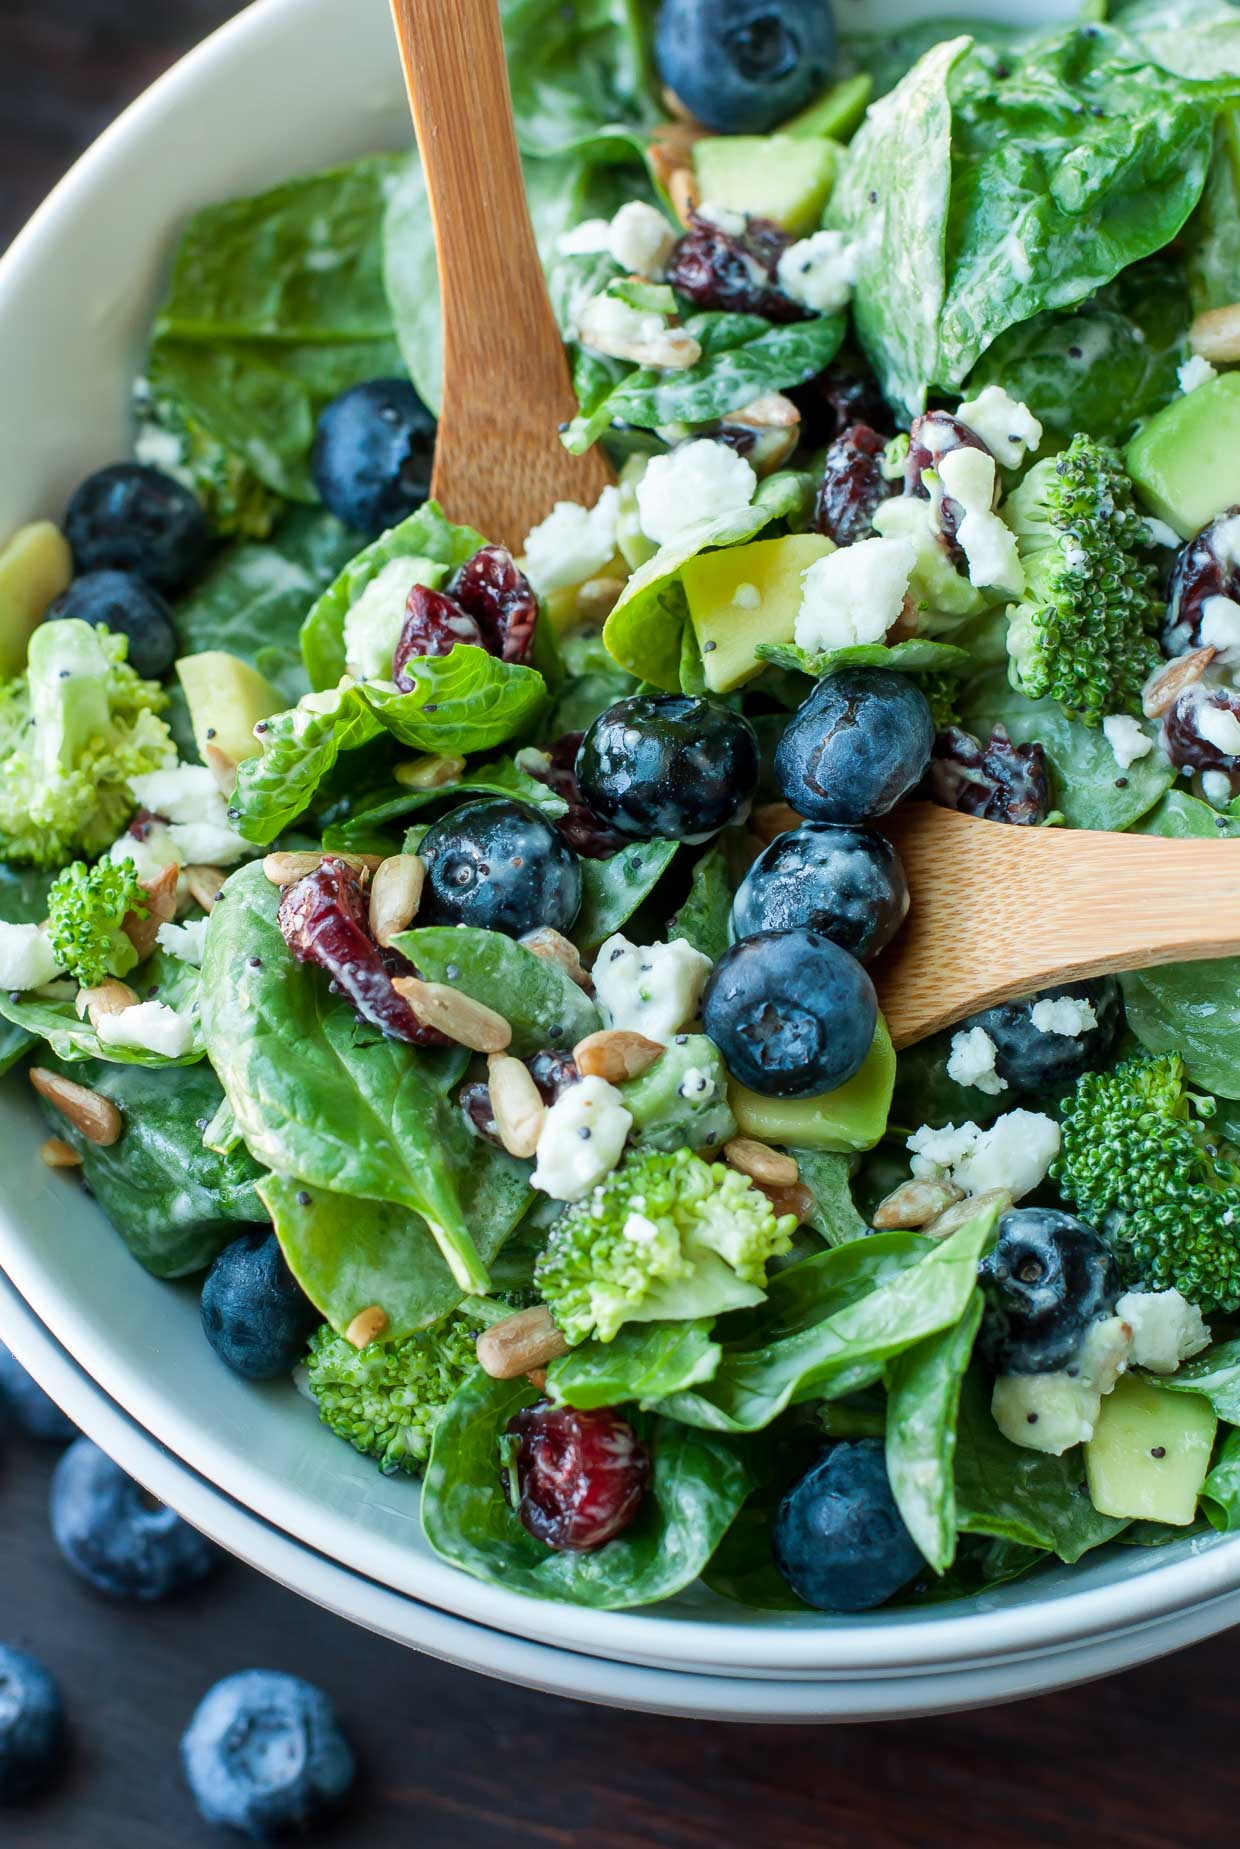 Blueberry Broccoli & Spinach Salad